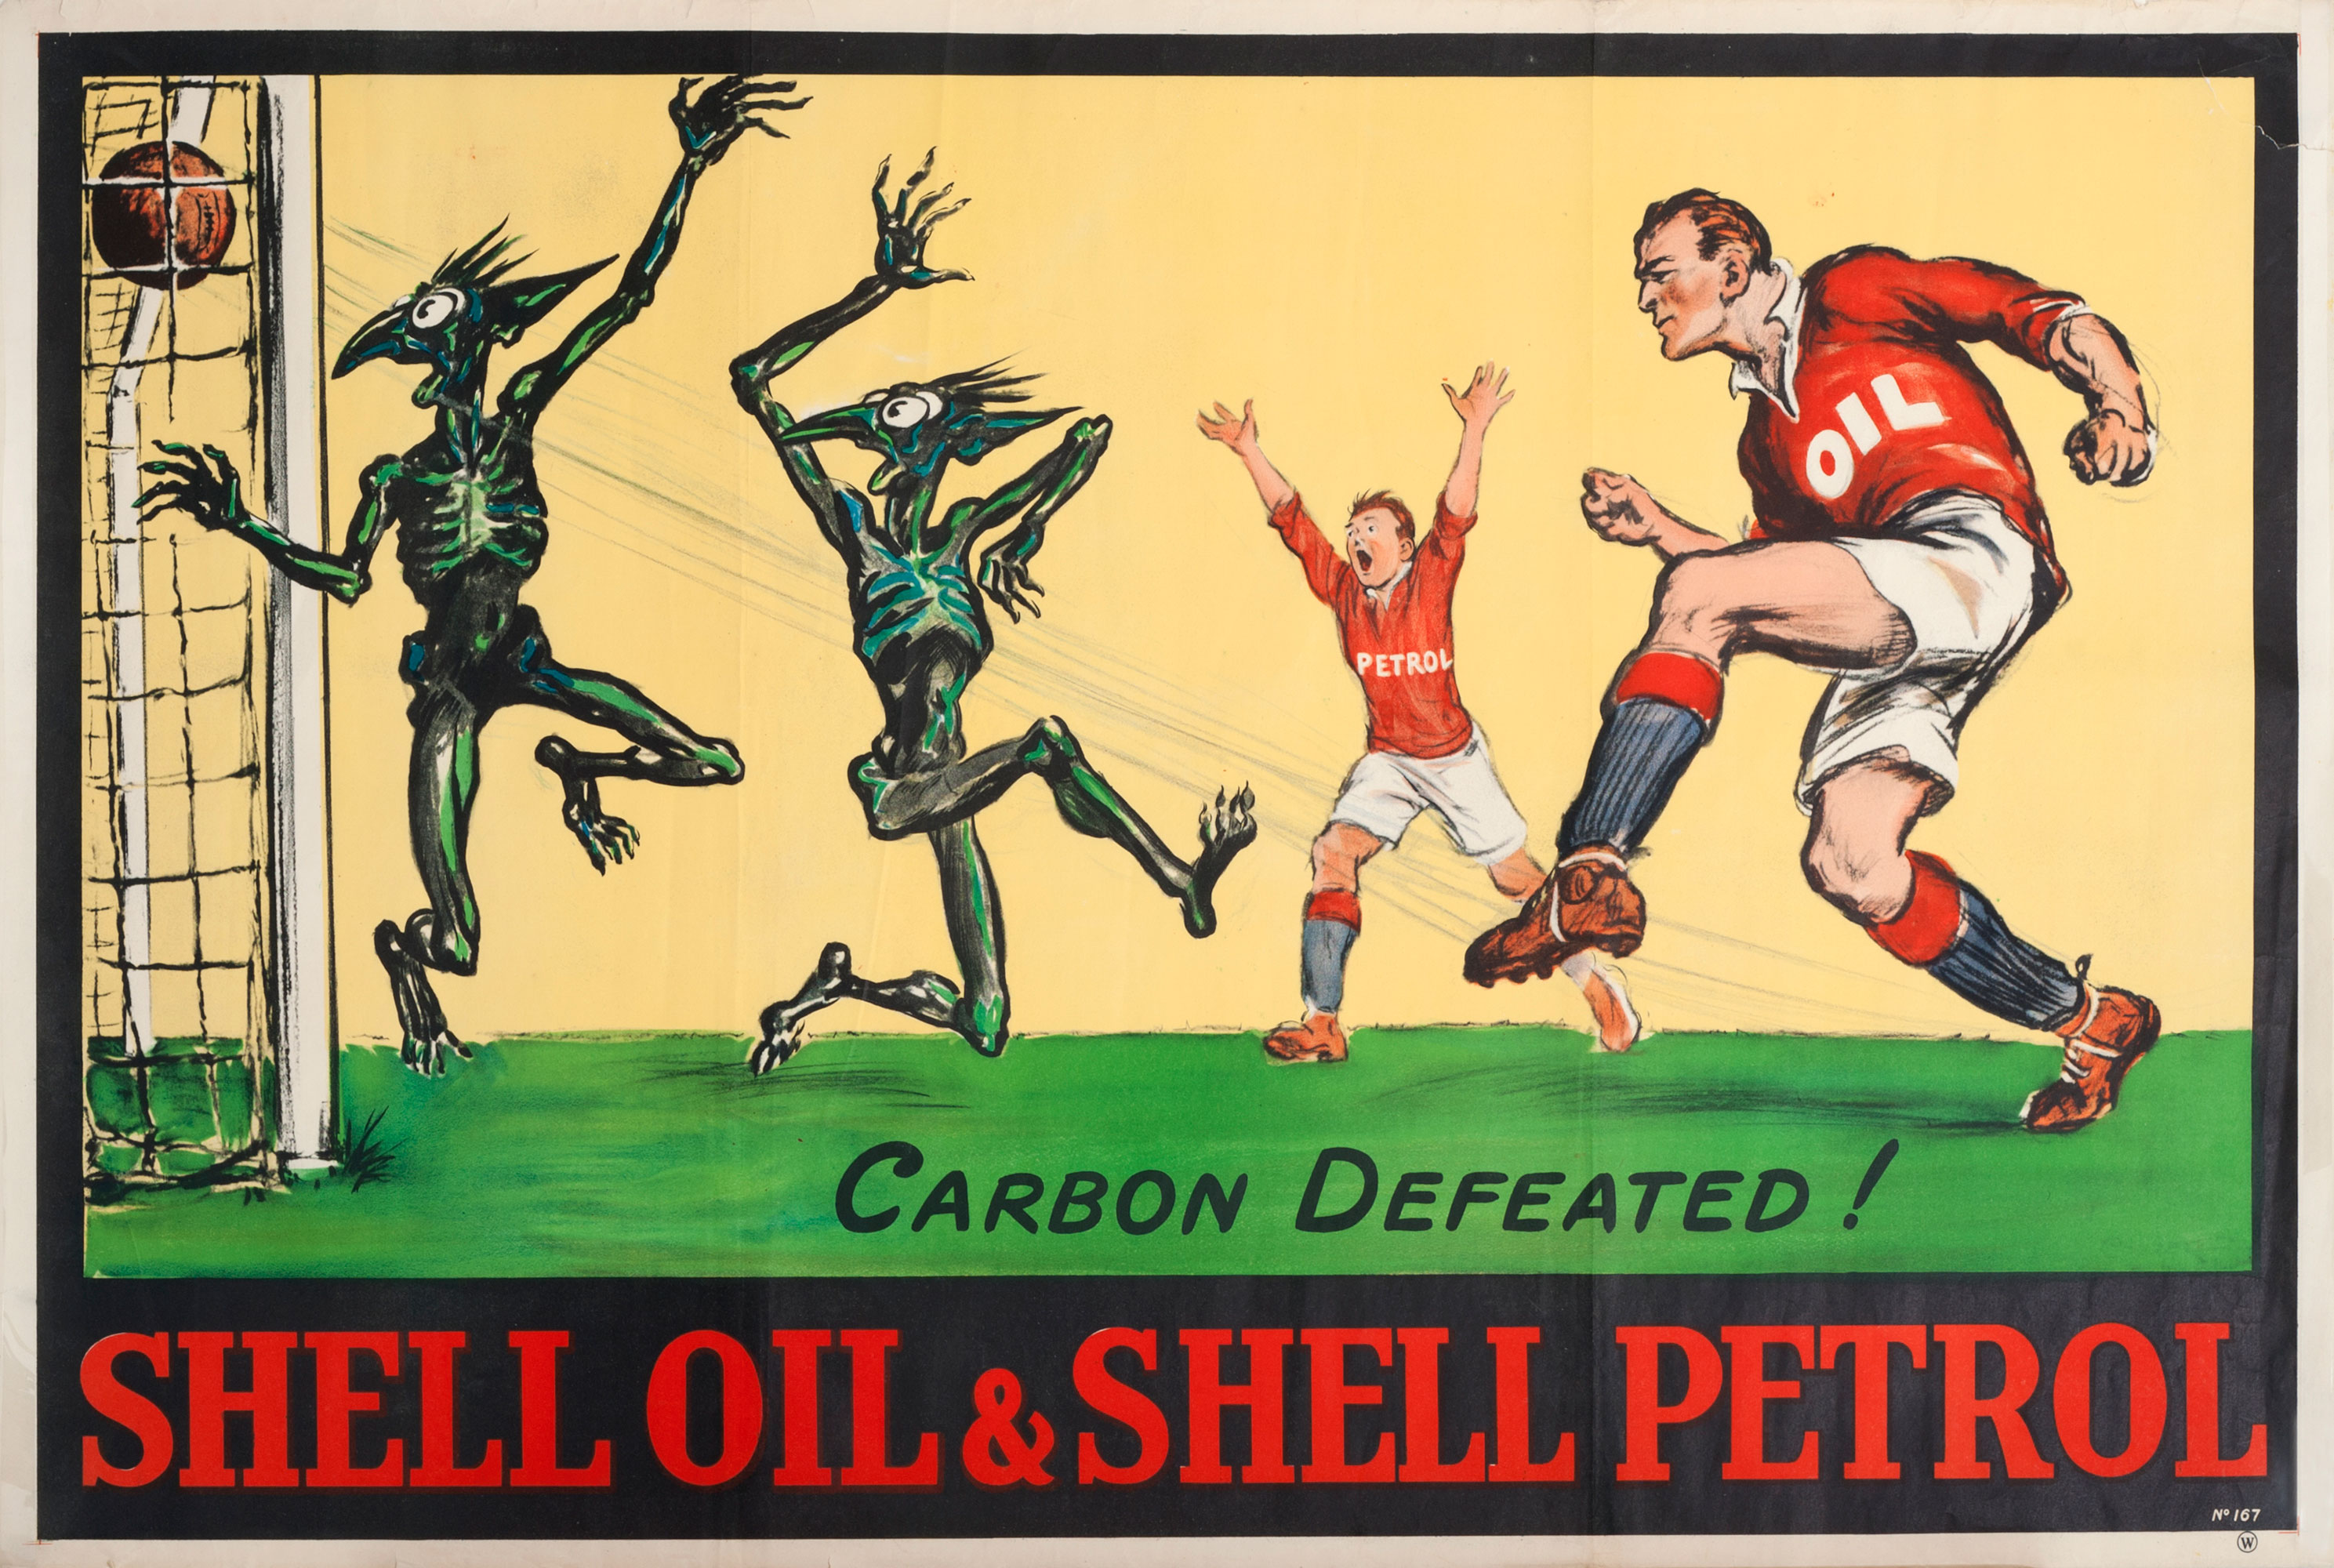 "Shell poster number 167, Carbon Defeated! Footballers (1928), no artist given. Painting shows footballer, wearing a shirt displaying the word oil, scoring a goal against sprite looking figures representing carbon. His team mate wearing a ""petrol"" shirt is cheering in the background. This campaign promoted the benefit of using Shell oil and petrol together to reduce carbon in engines."